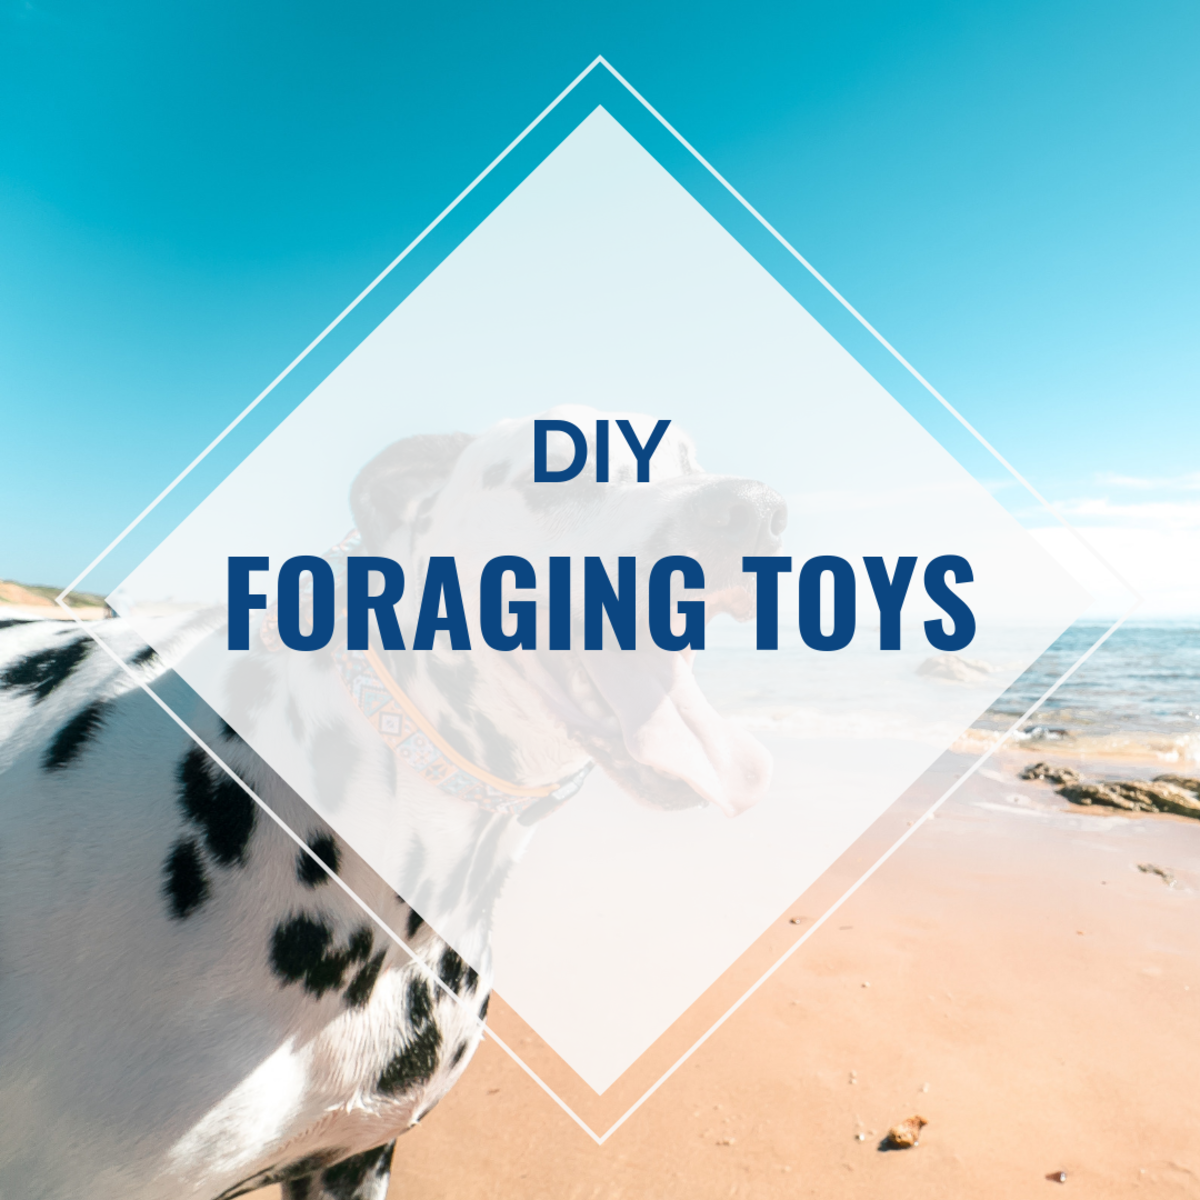 DIY Foraging Toys